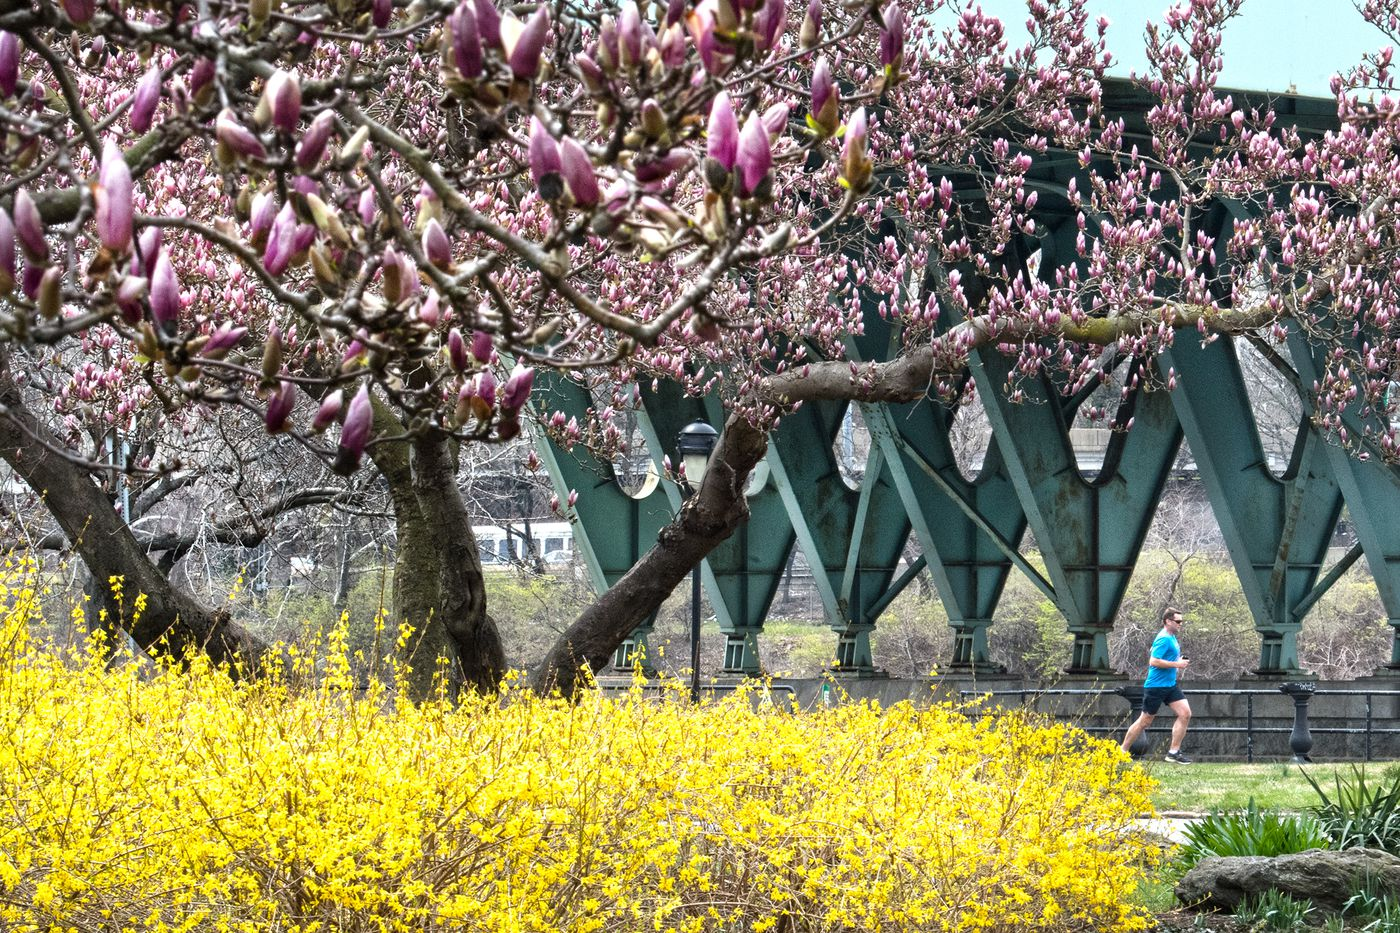 More city trees can help with climate change | Editorial